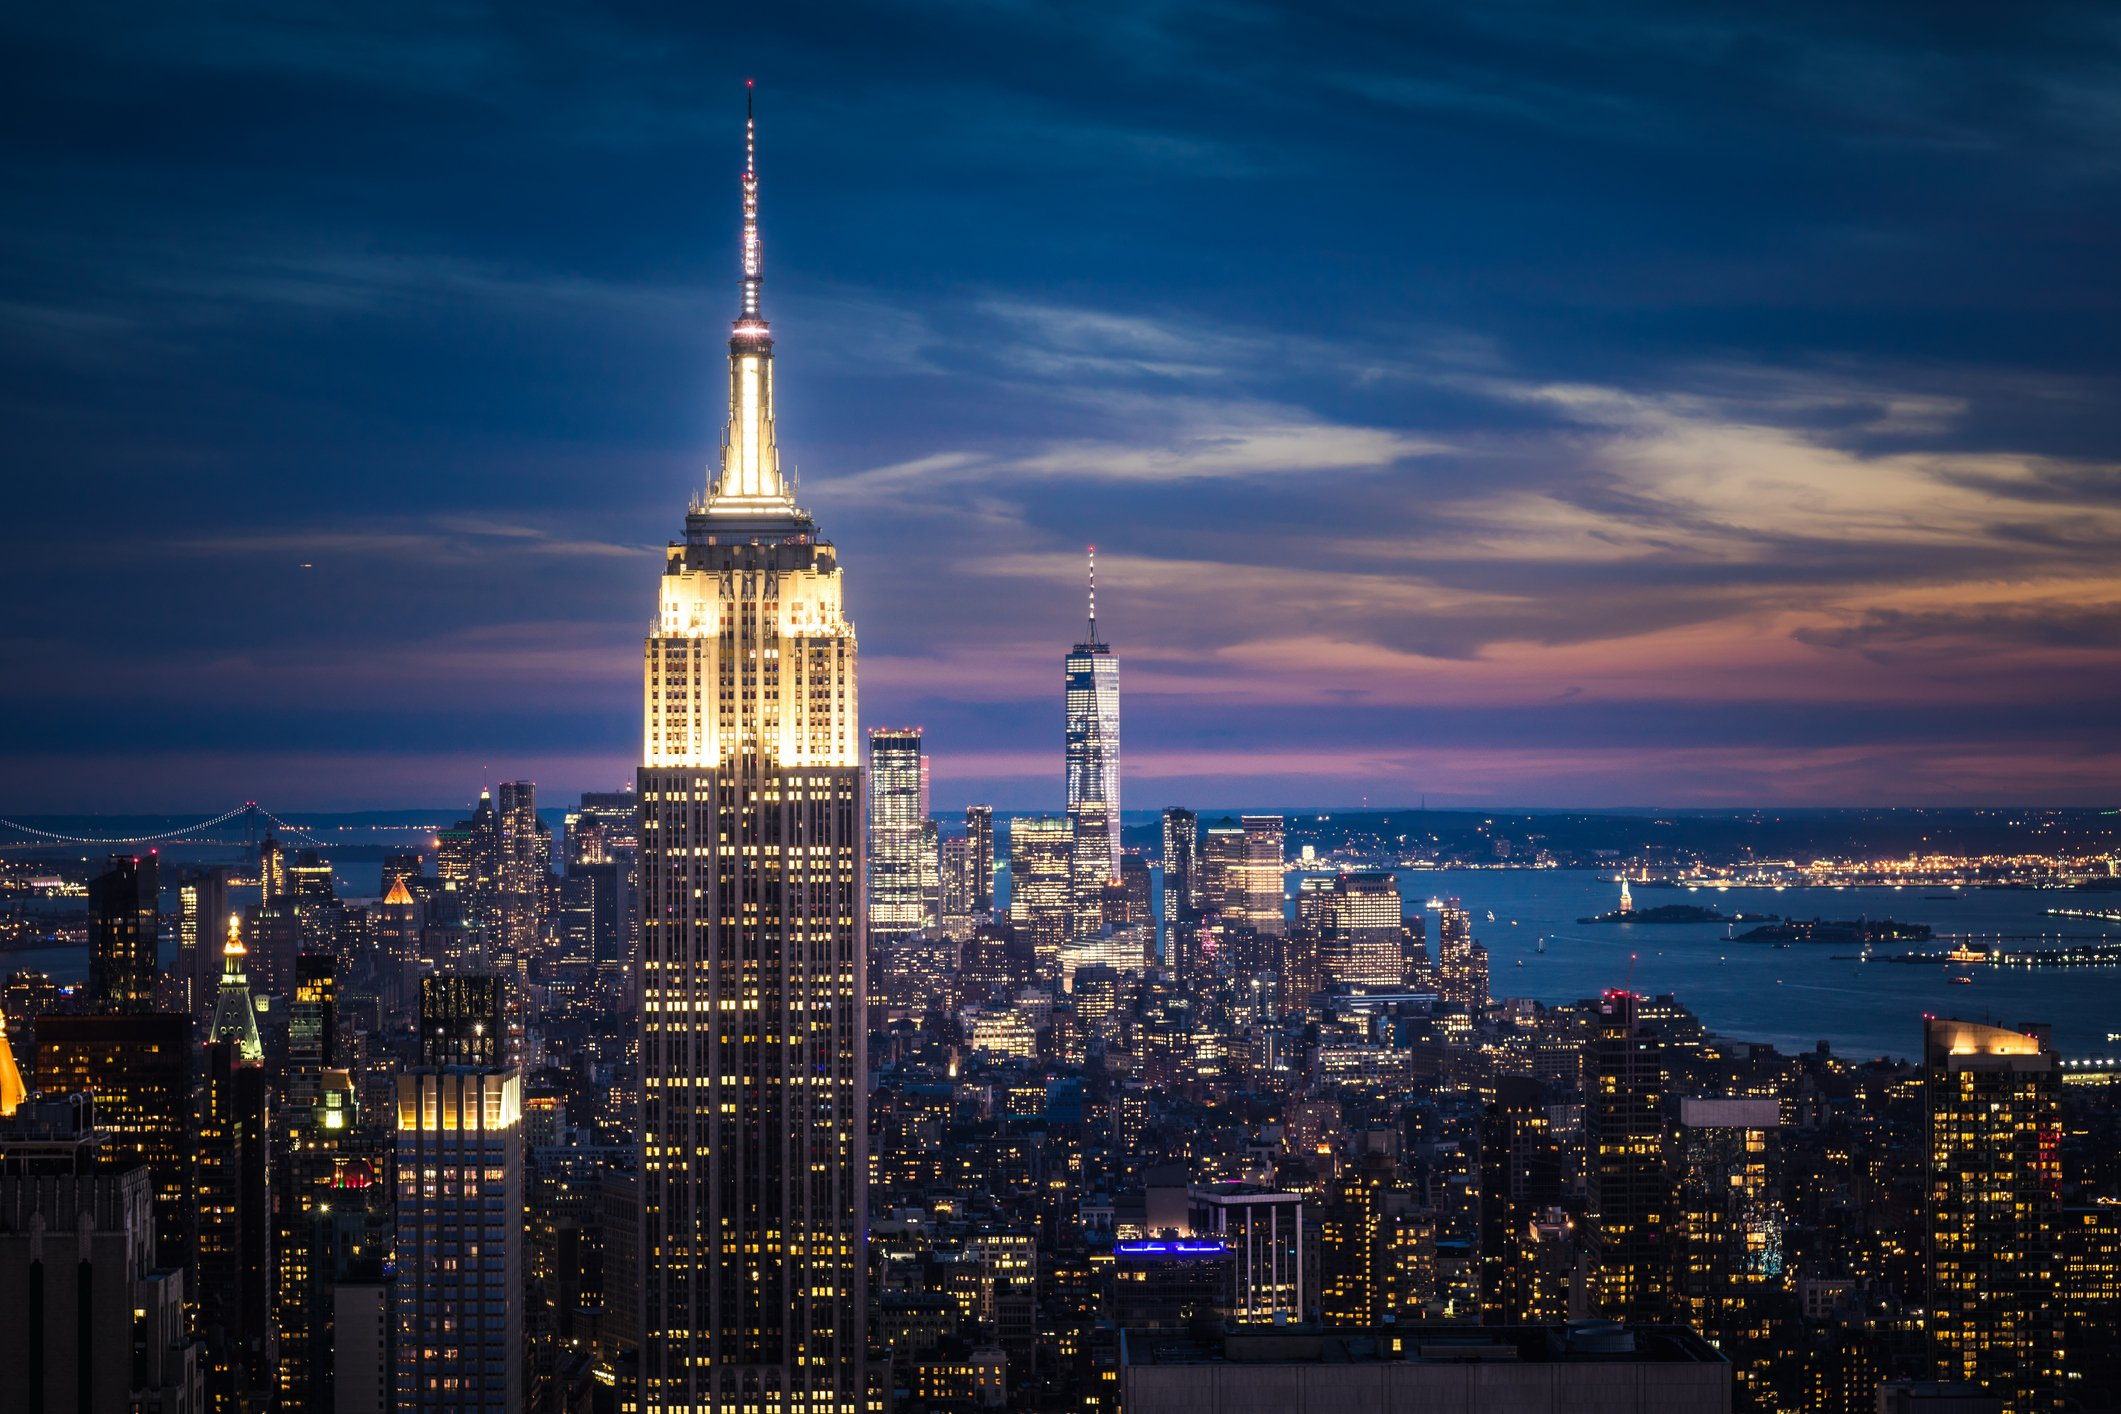 A photo of Empire State Building and New York City skyline at night. | Photo: Getty Images